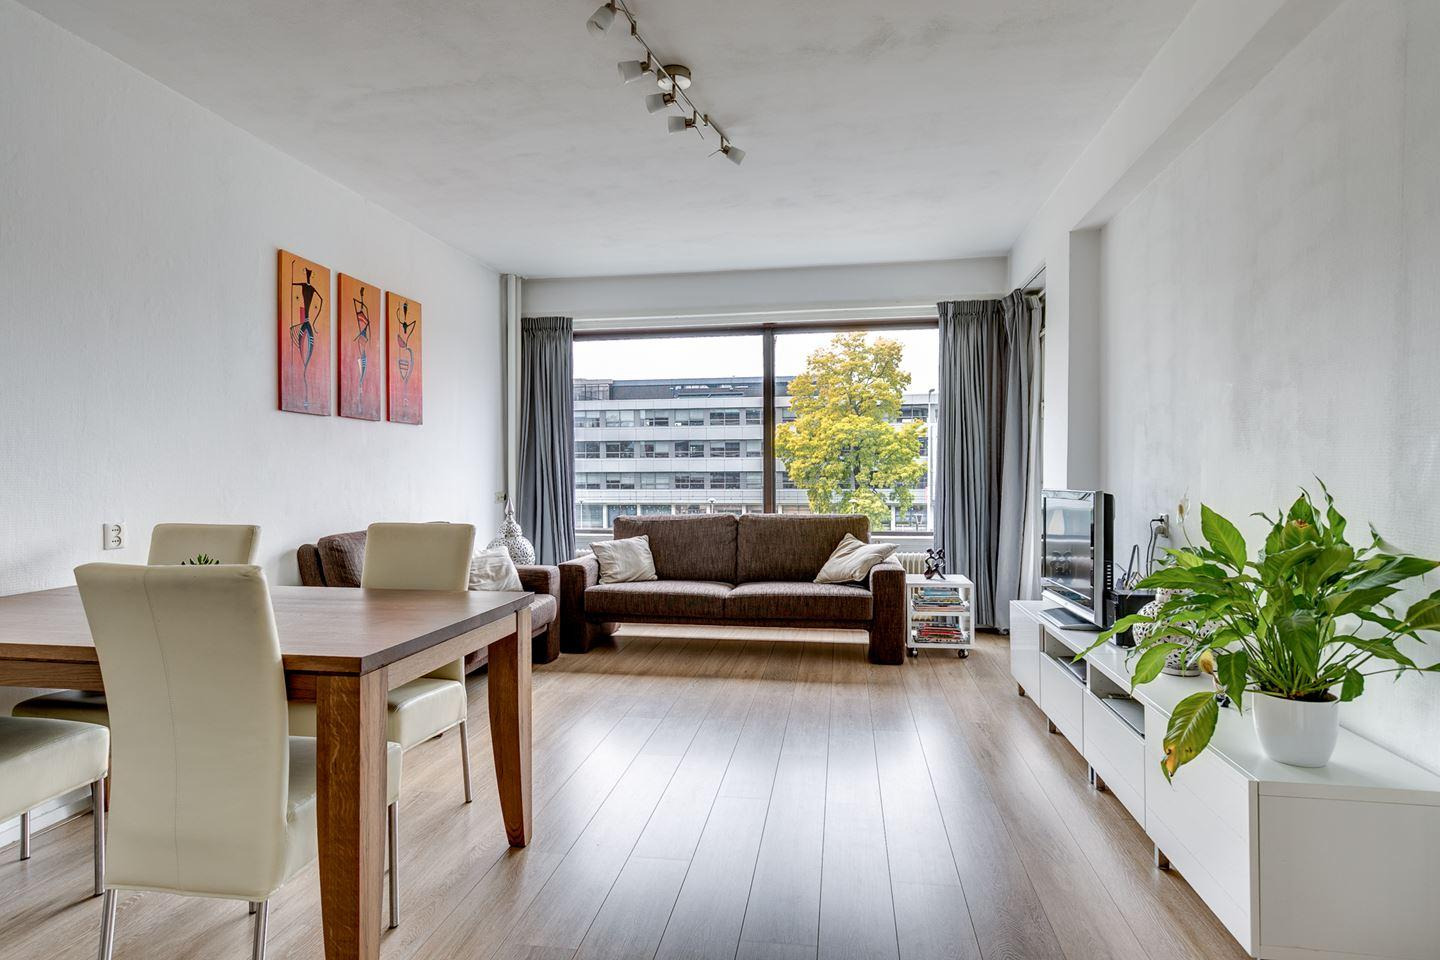 Appartement Beneluxlaan te huur in Utrecht NederWoon